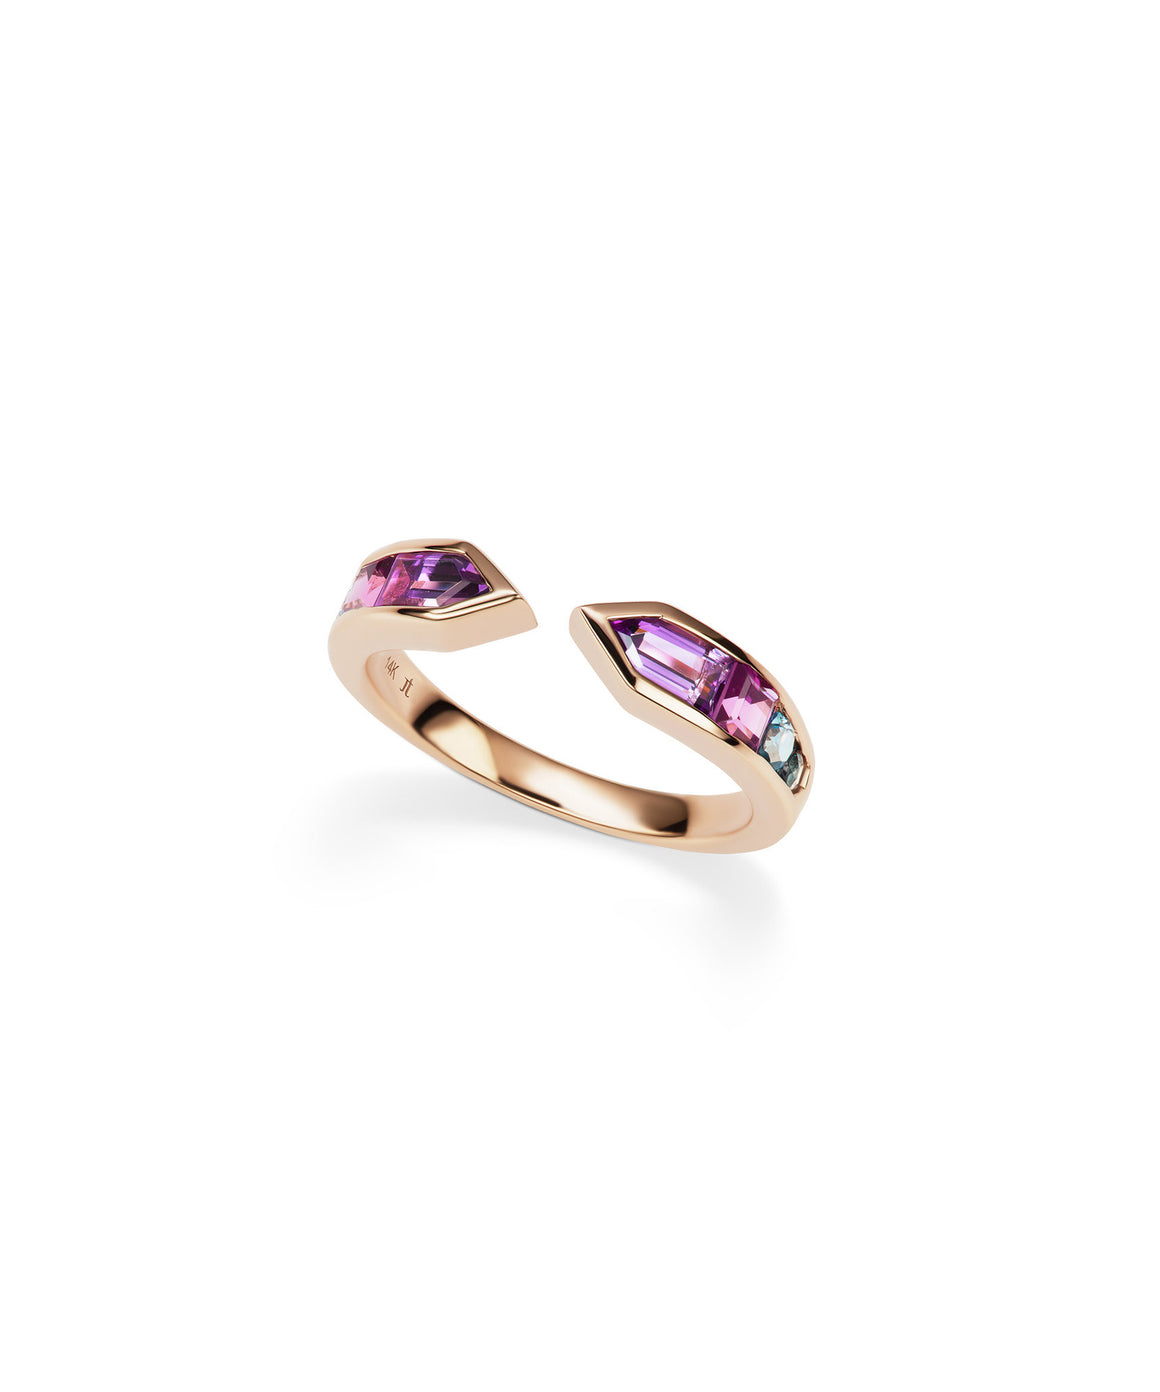 Arrow Ring with Amethyst and Topaz - Lesley Ann Jewels